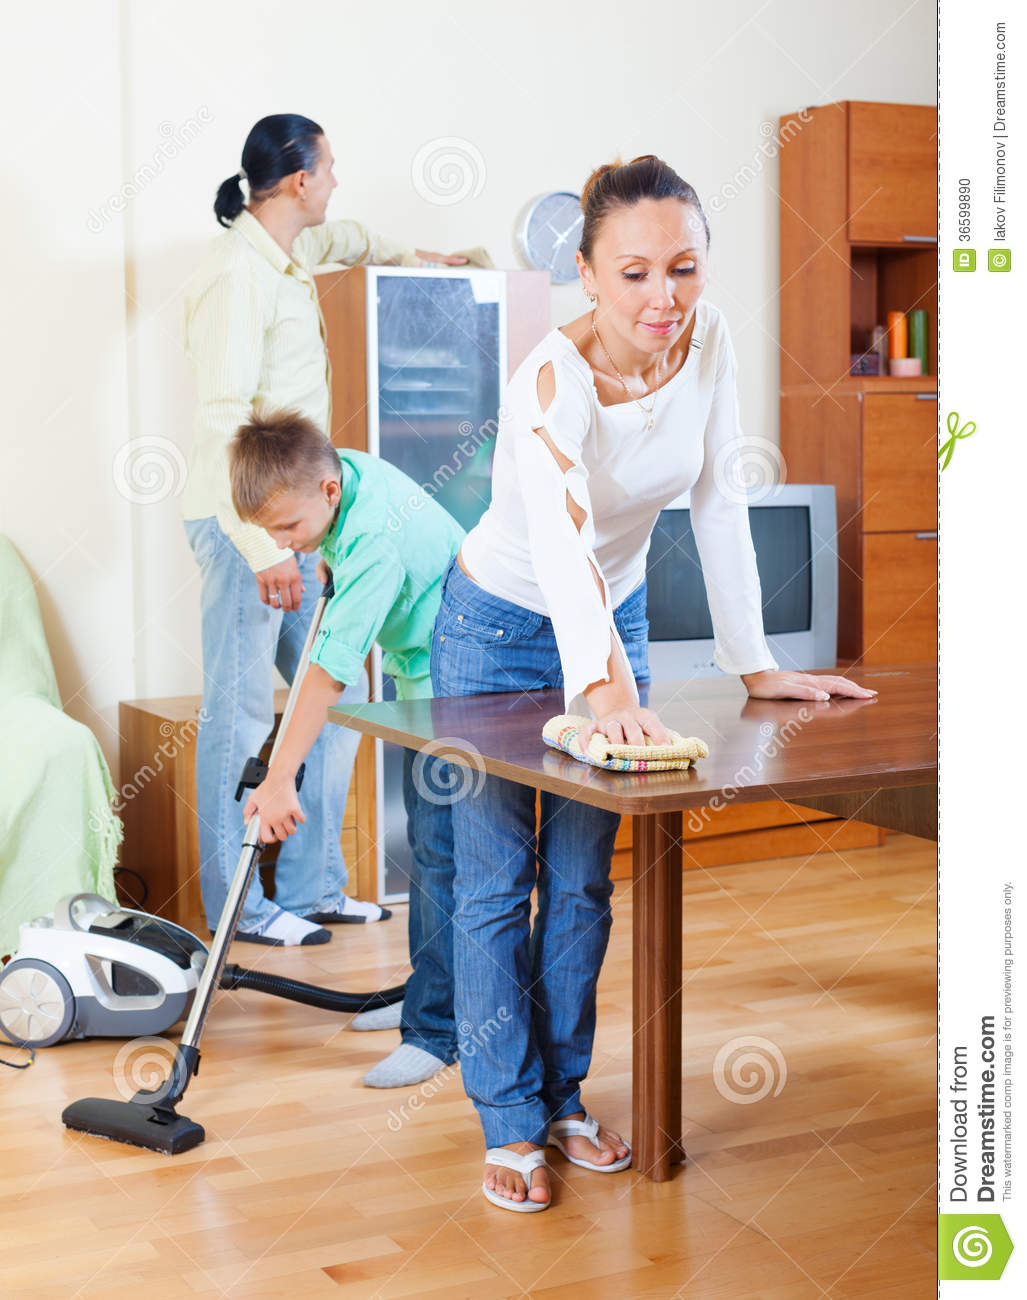 Ordinary family of three doing house cleaning stock photo for House cleaning stock photos